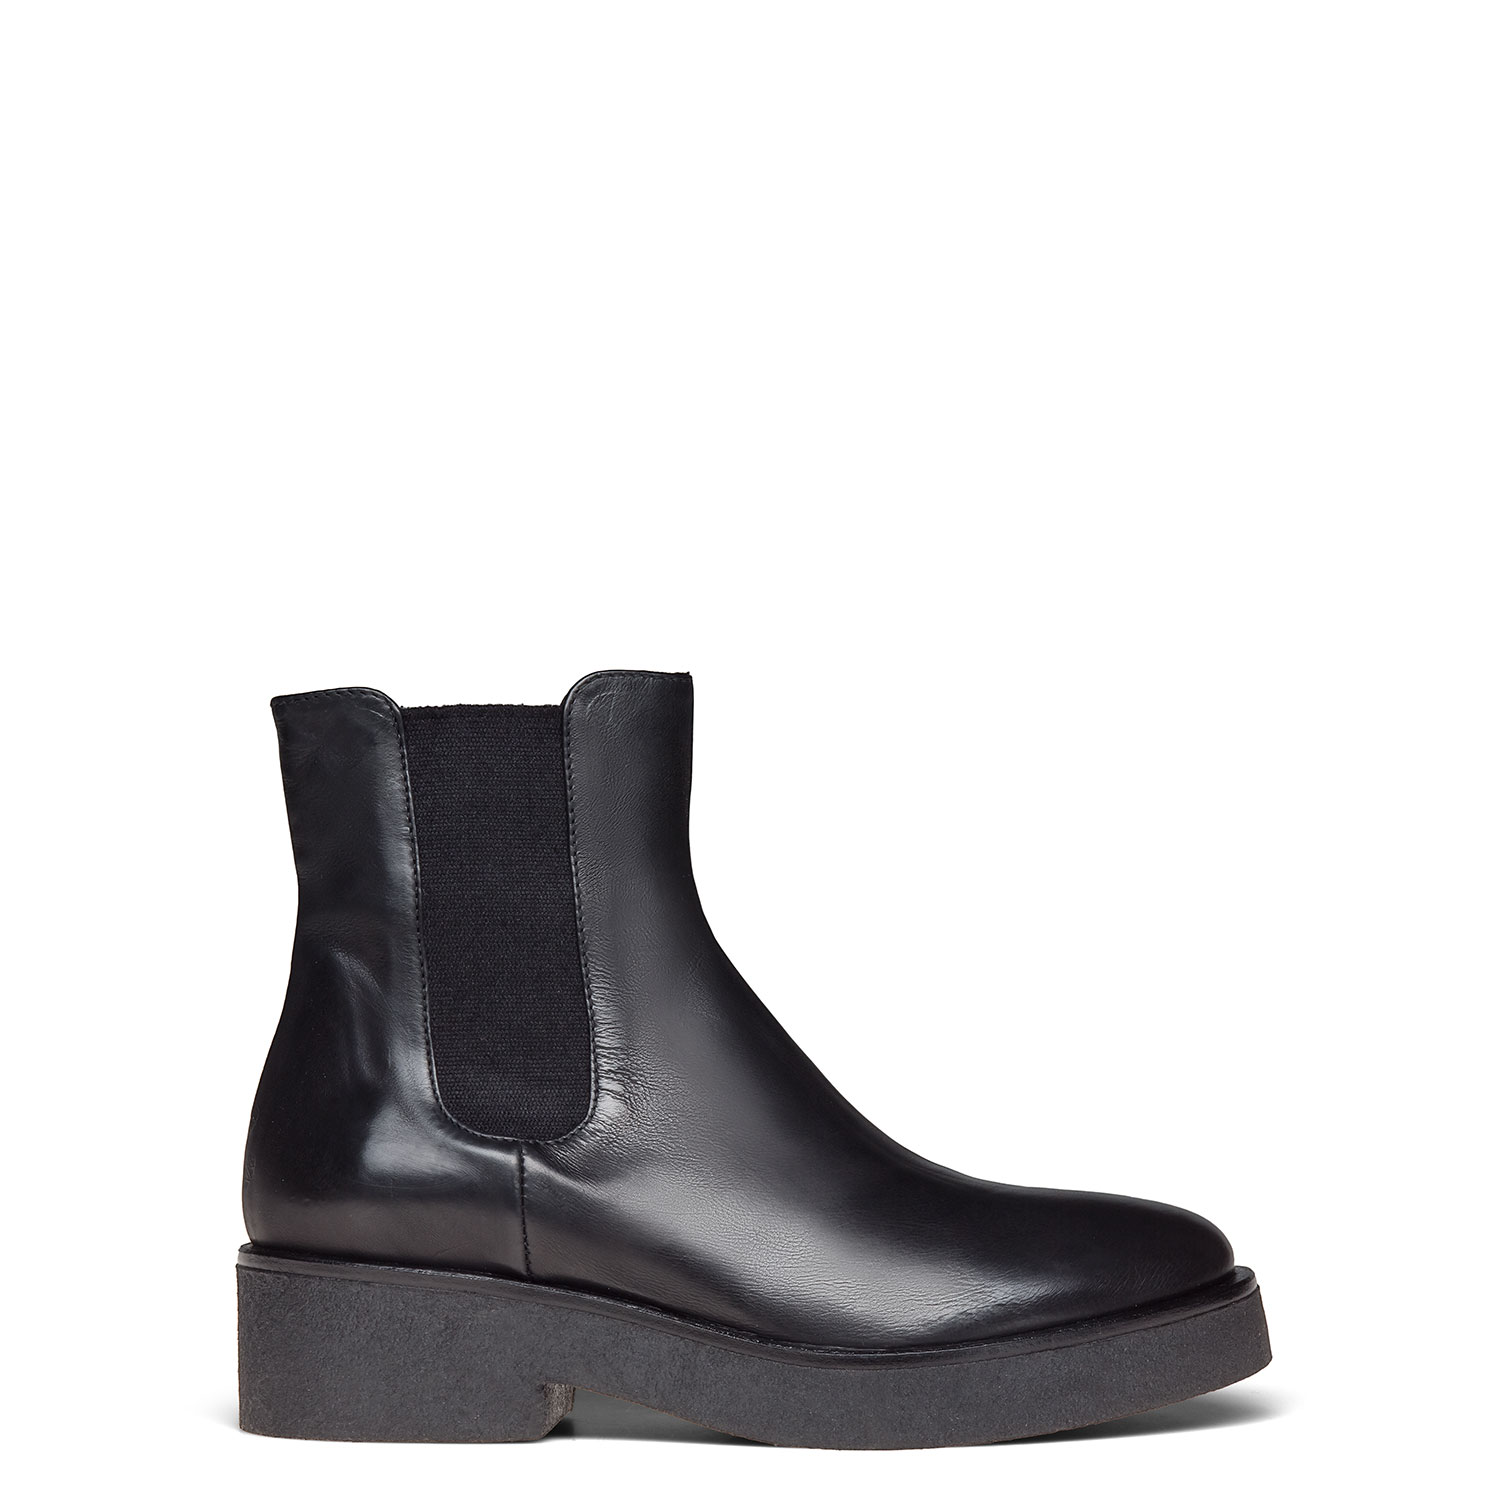 Women's ankle boots CARLO PAZOLINI TO-X3060-1